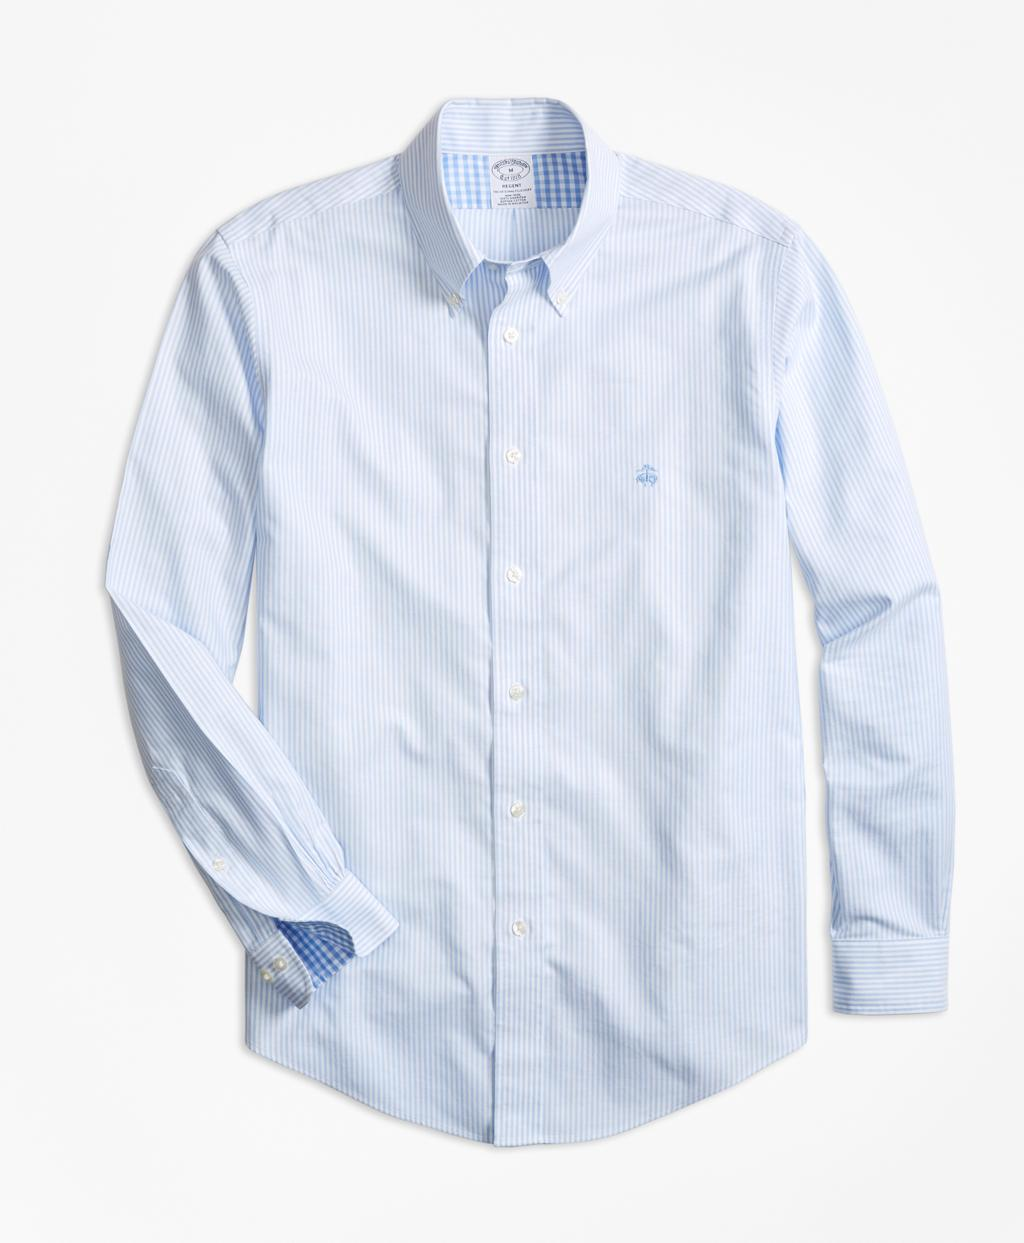 Lyst brooks brothers non iron regent fit stripe sport for Brooks brothers non iron shirts review